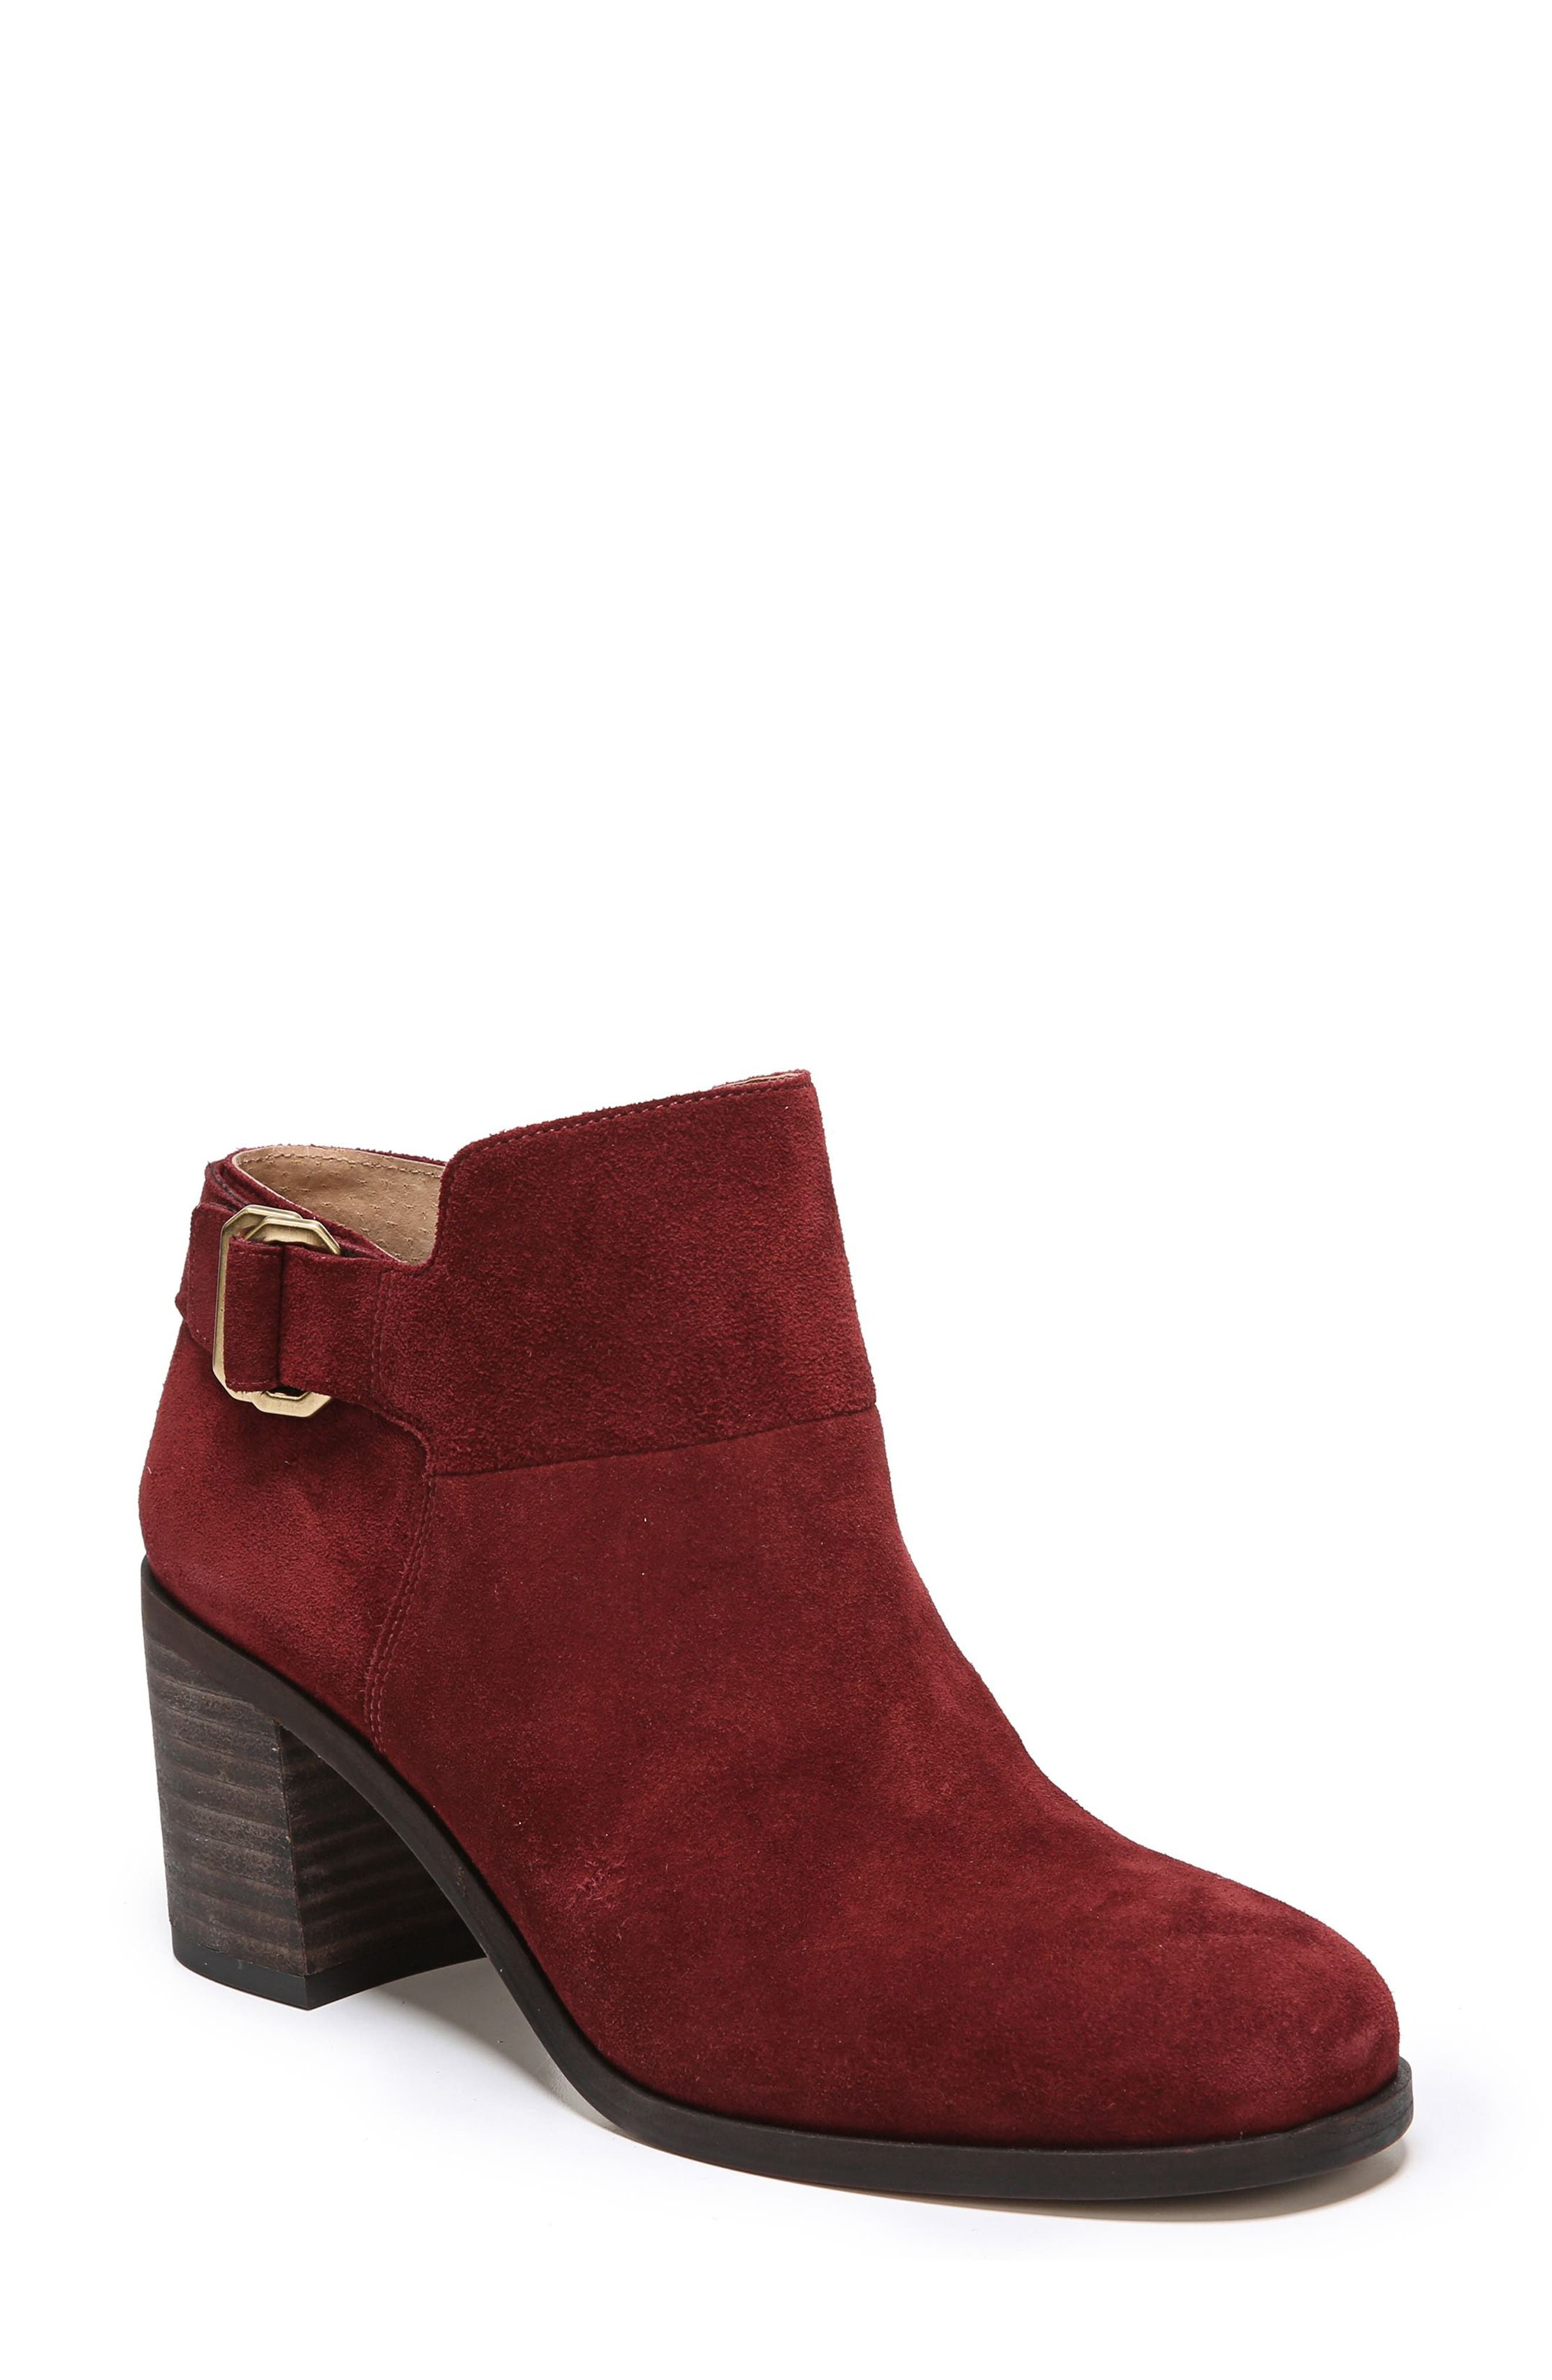 Alternate Image 1 Selected - SARTO by Franco Sarto Matisse Bootie (Women)